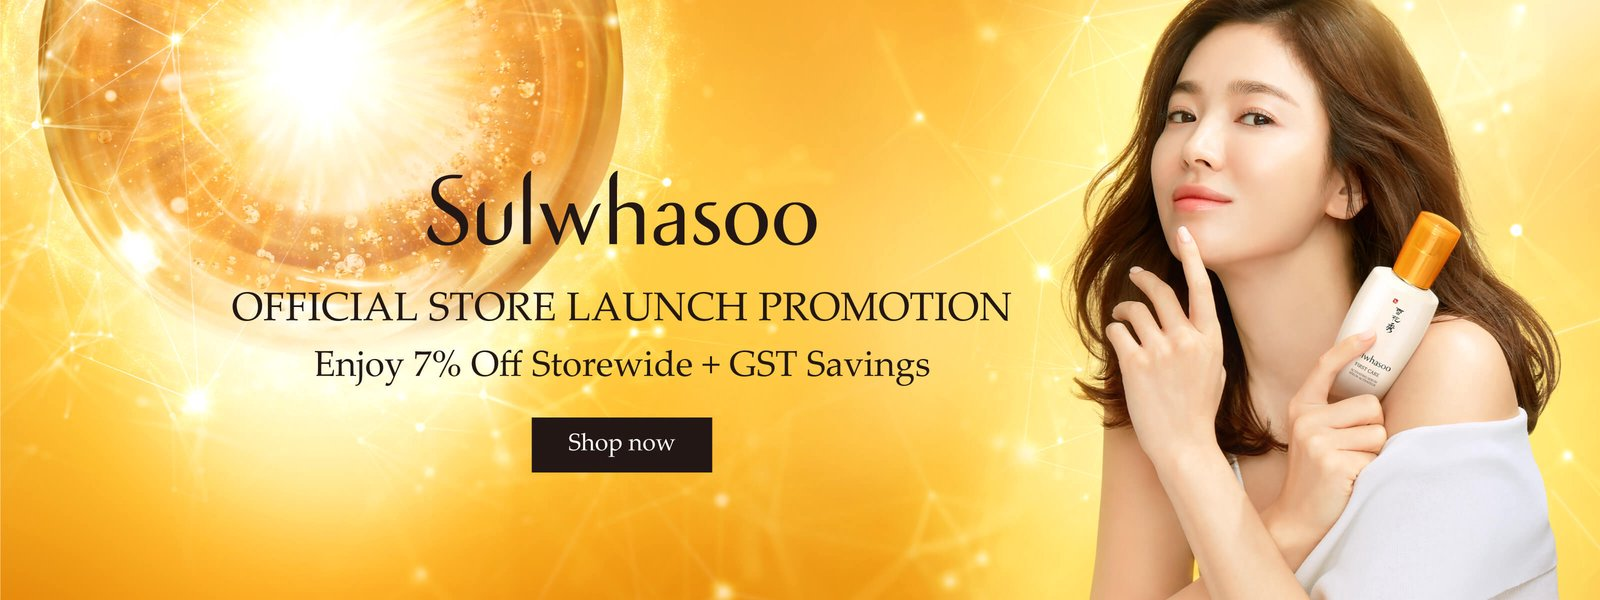 Sulwhasoo Official Store Launch - Enjoy 7% off + GST Savings storewide